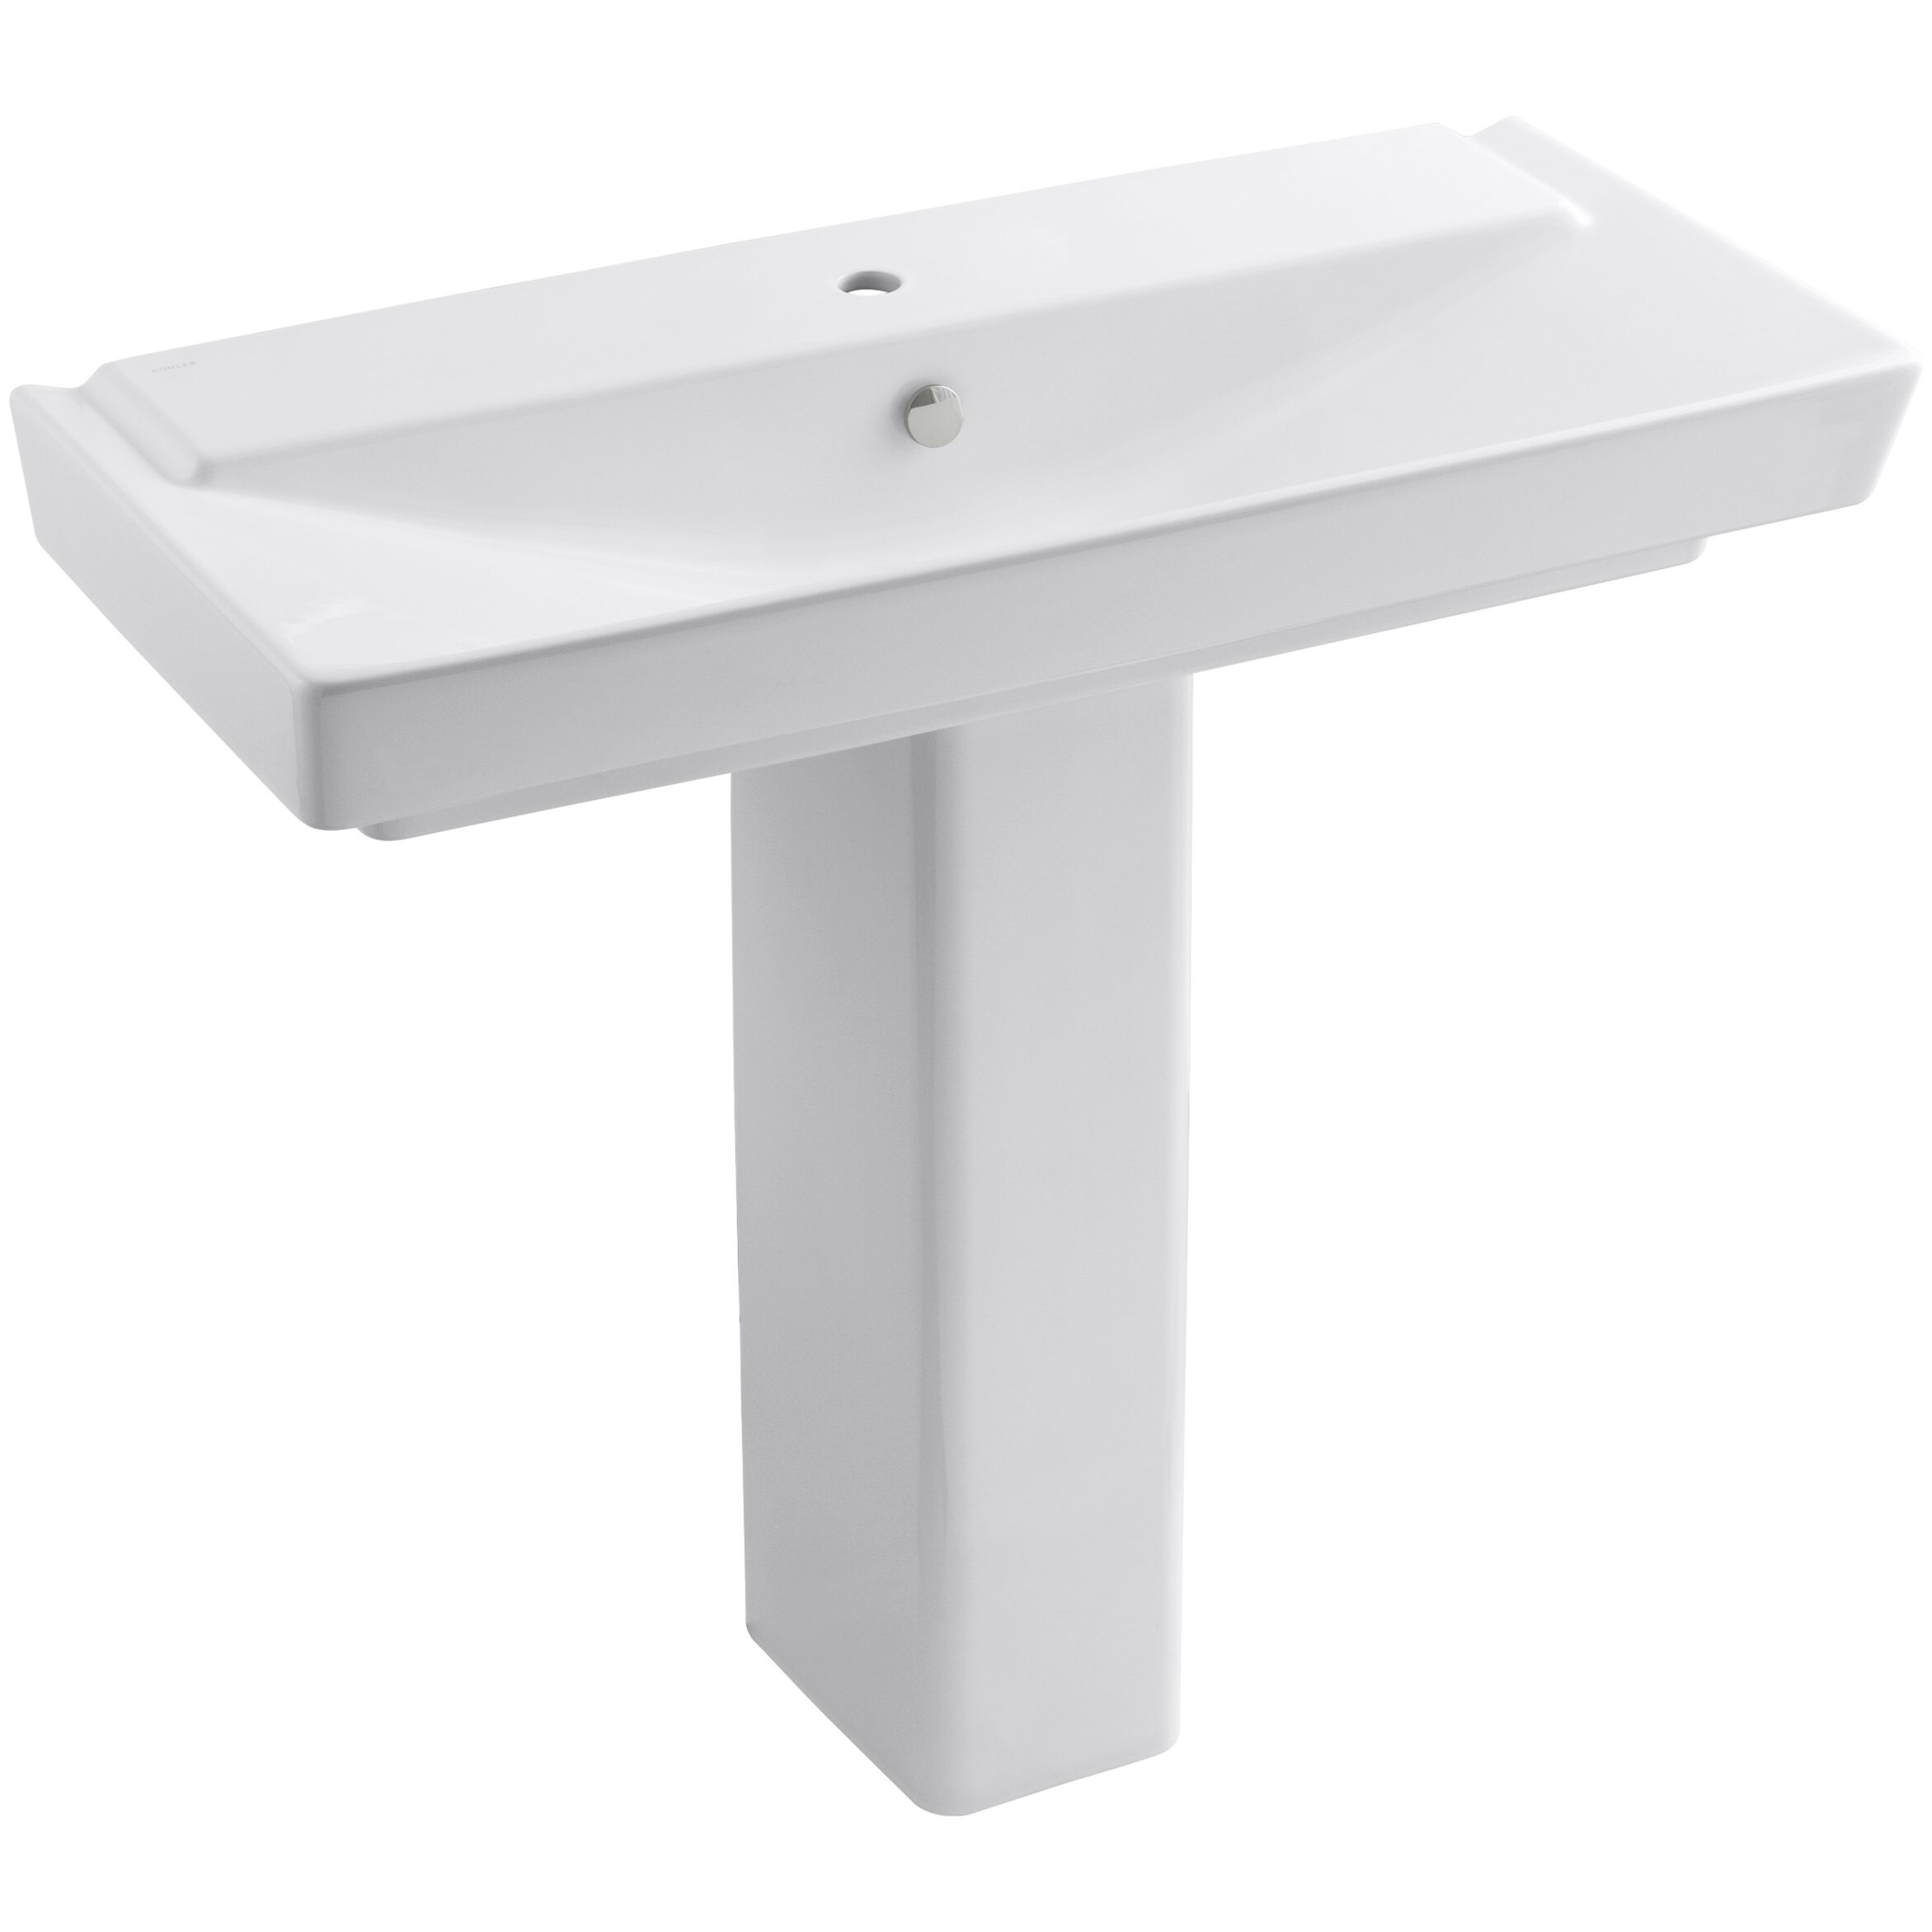 pin basins cooke full basin pedestal sink lewis white serina